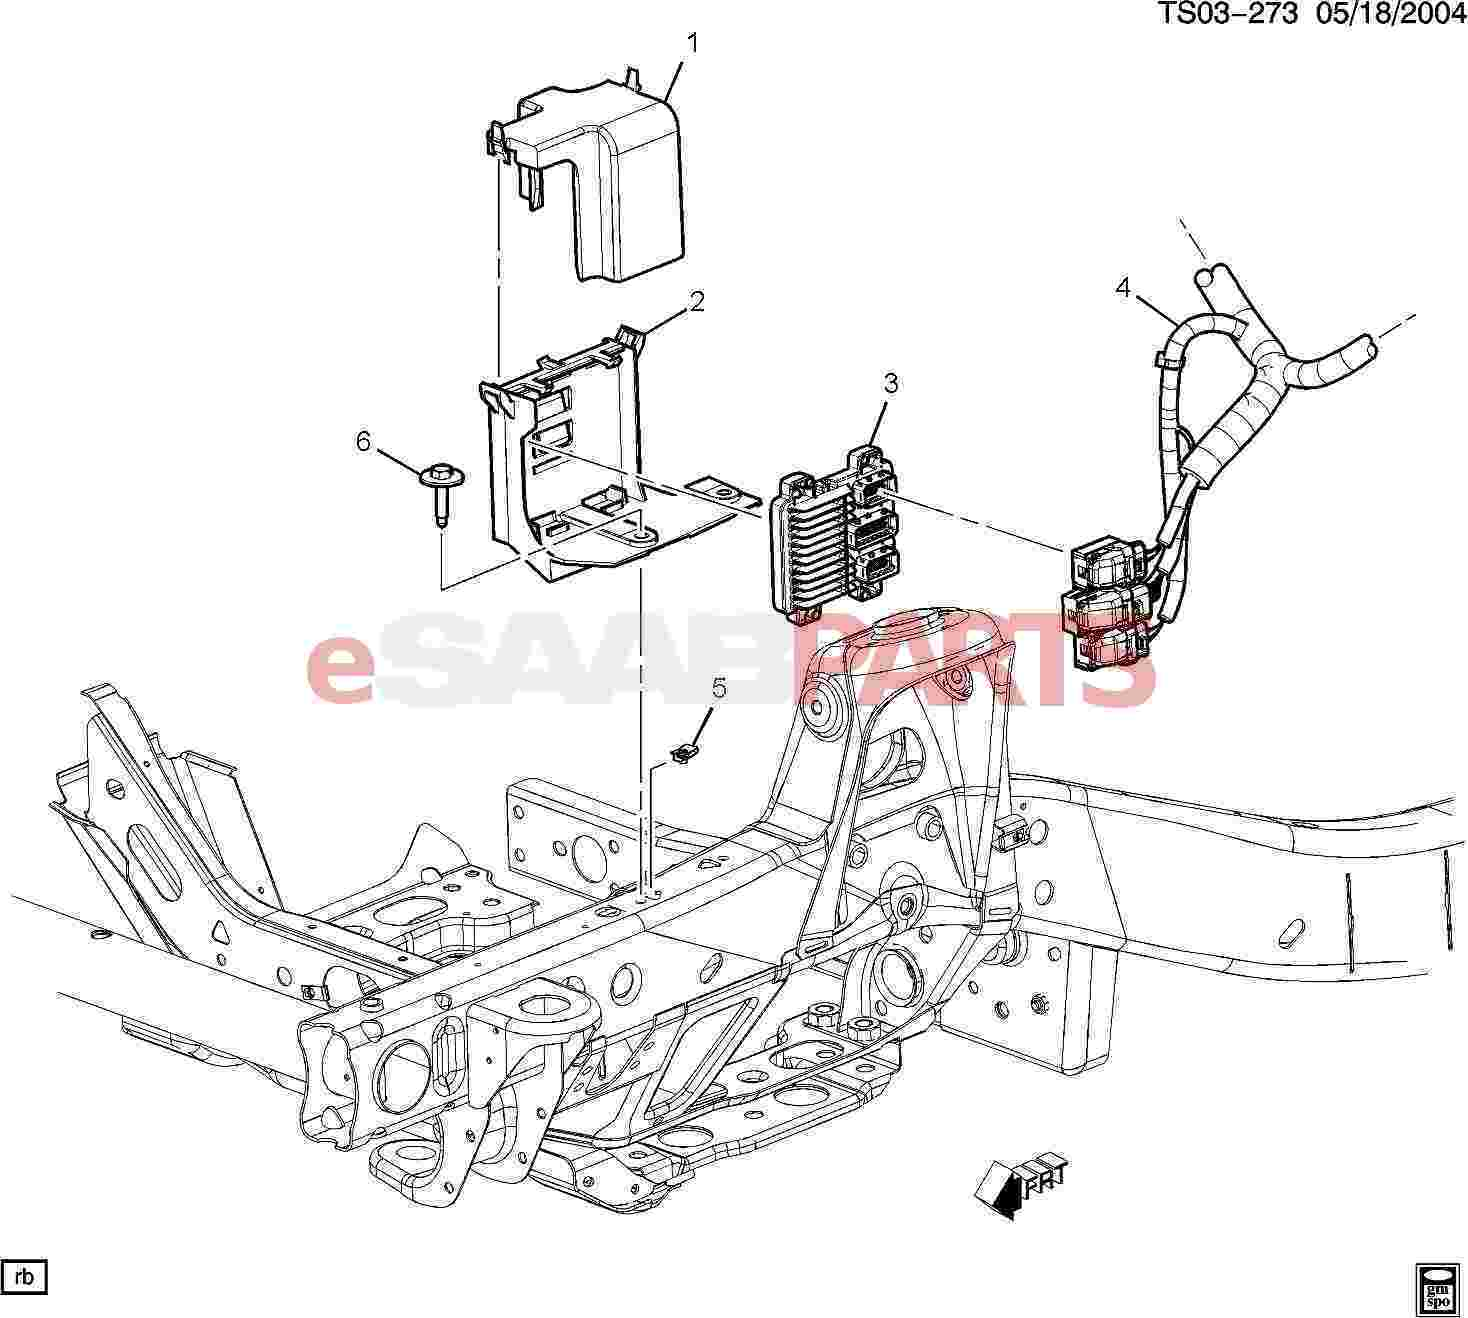 hight resolution of esaabparts com saab 9 7x electrical parts electronic modules e c m module wiring harness 5 3m